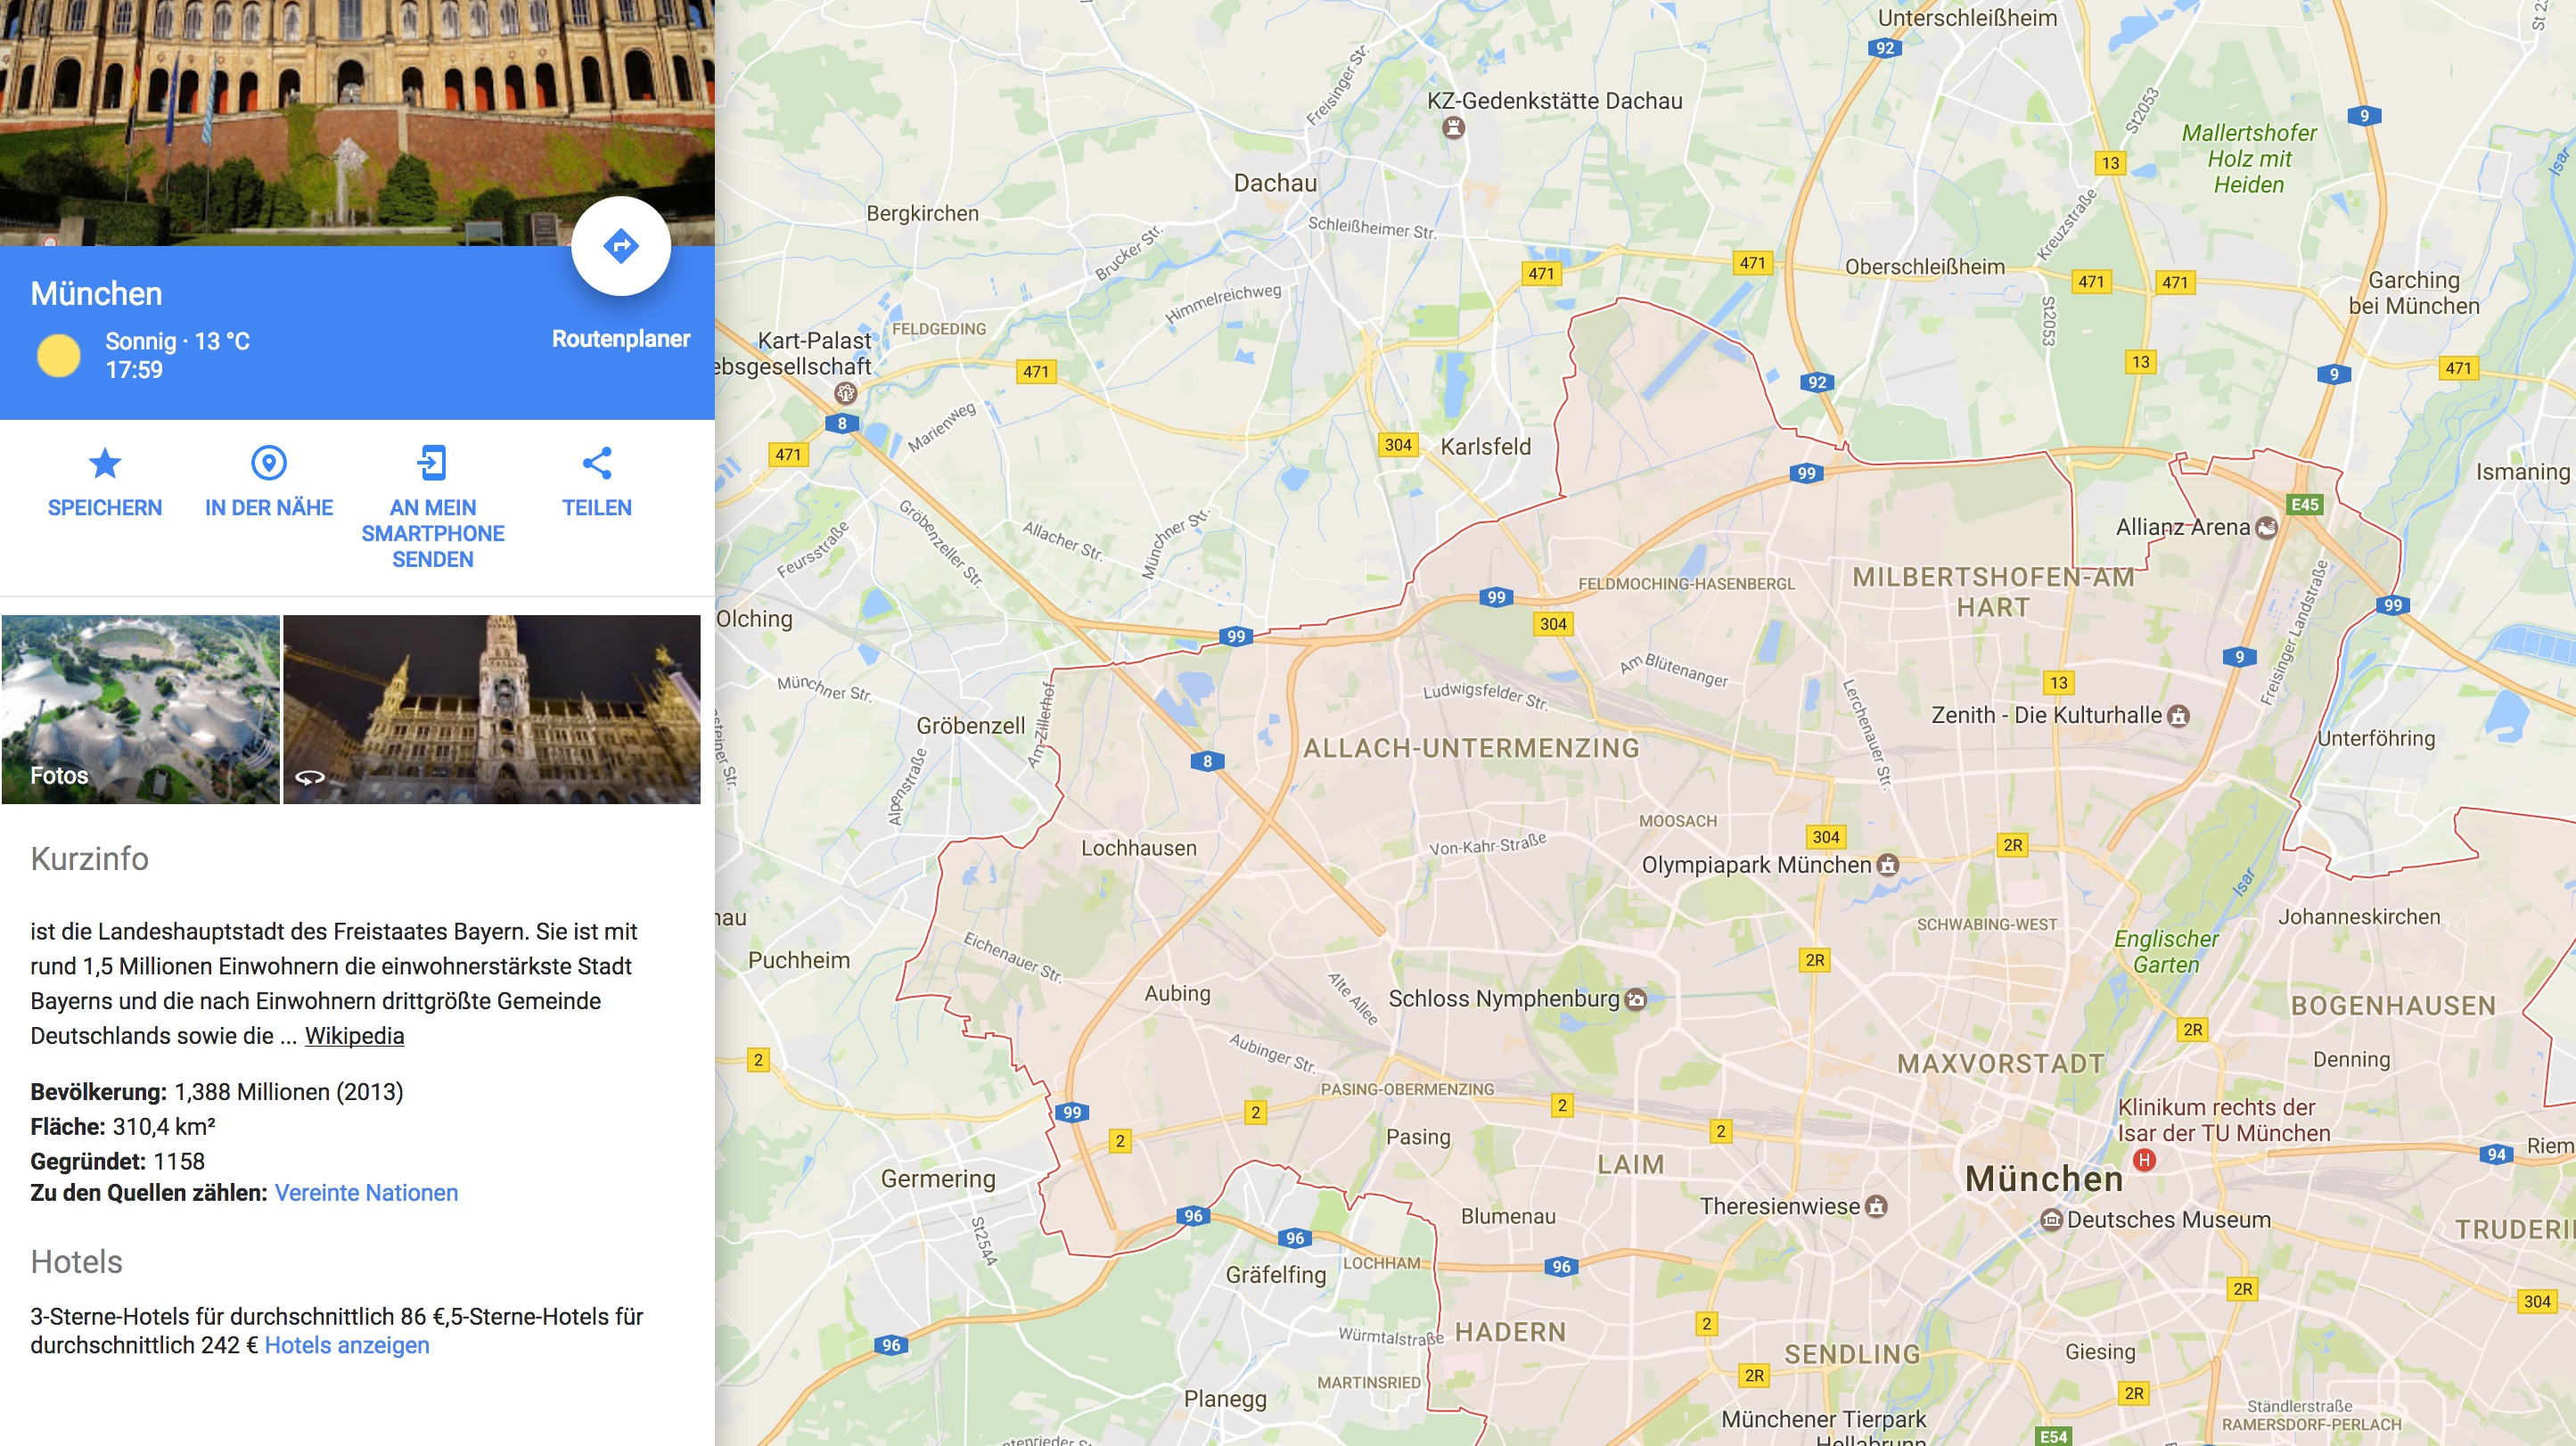 GoogleMapsLocation